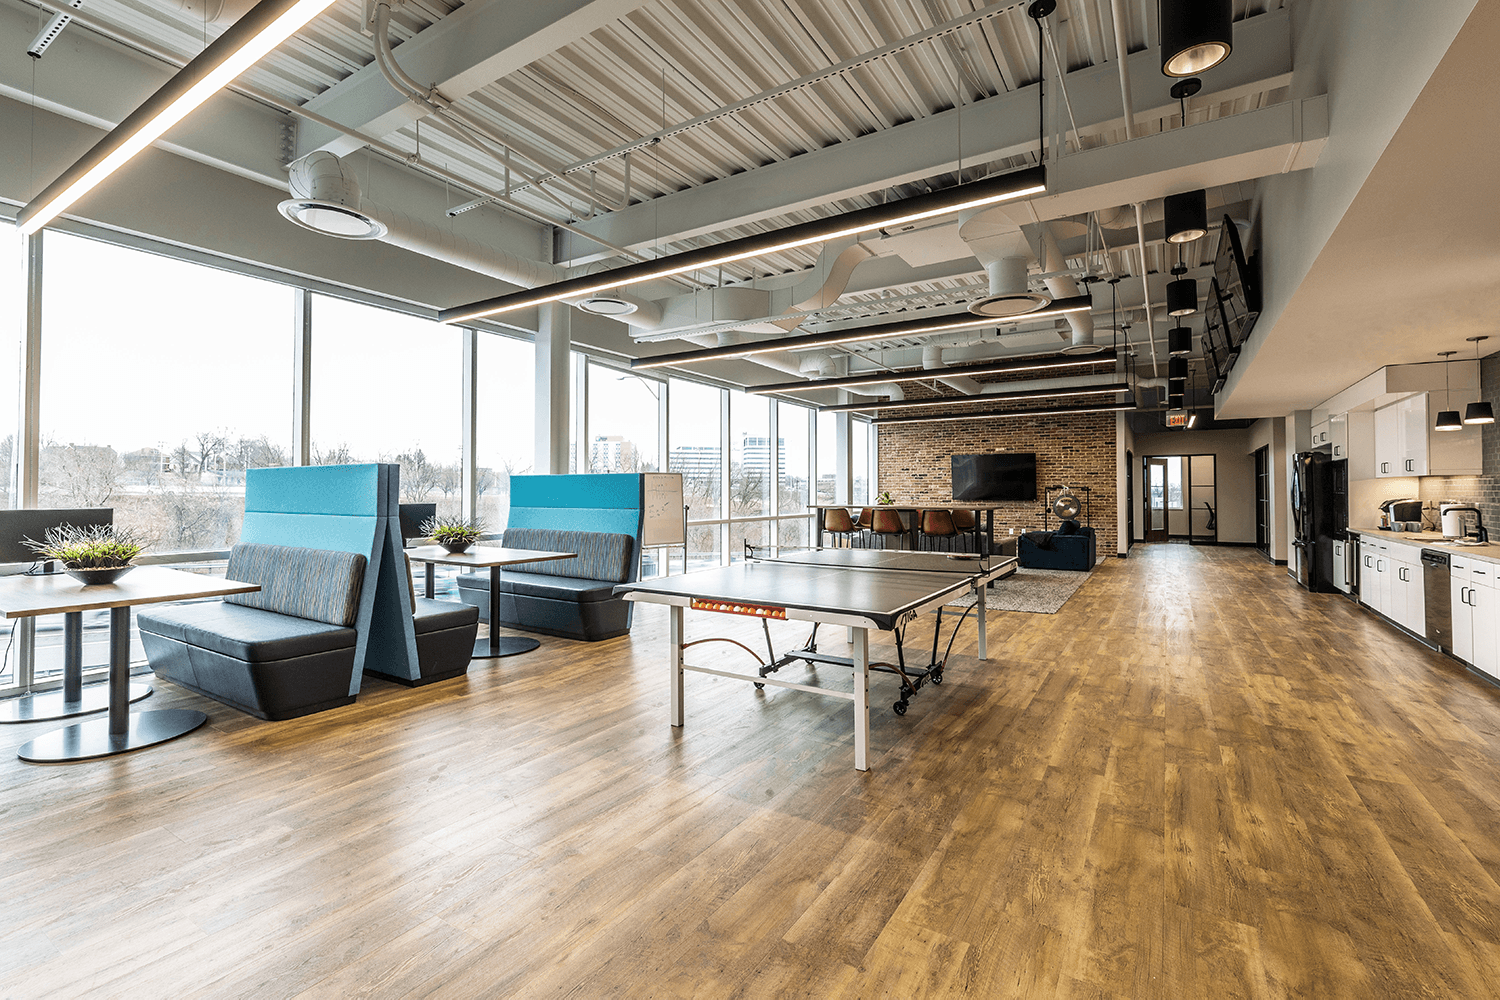 collaborative office space with booths and a ping pong table